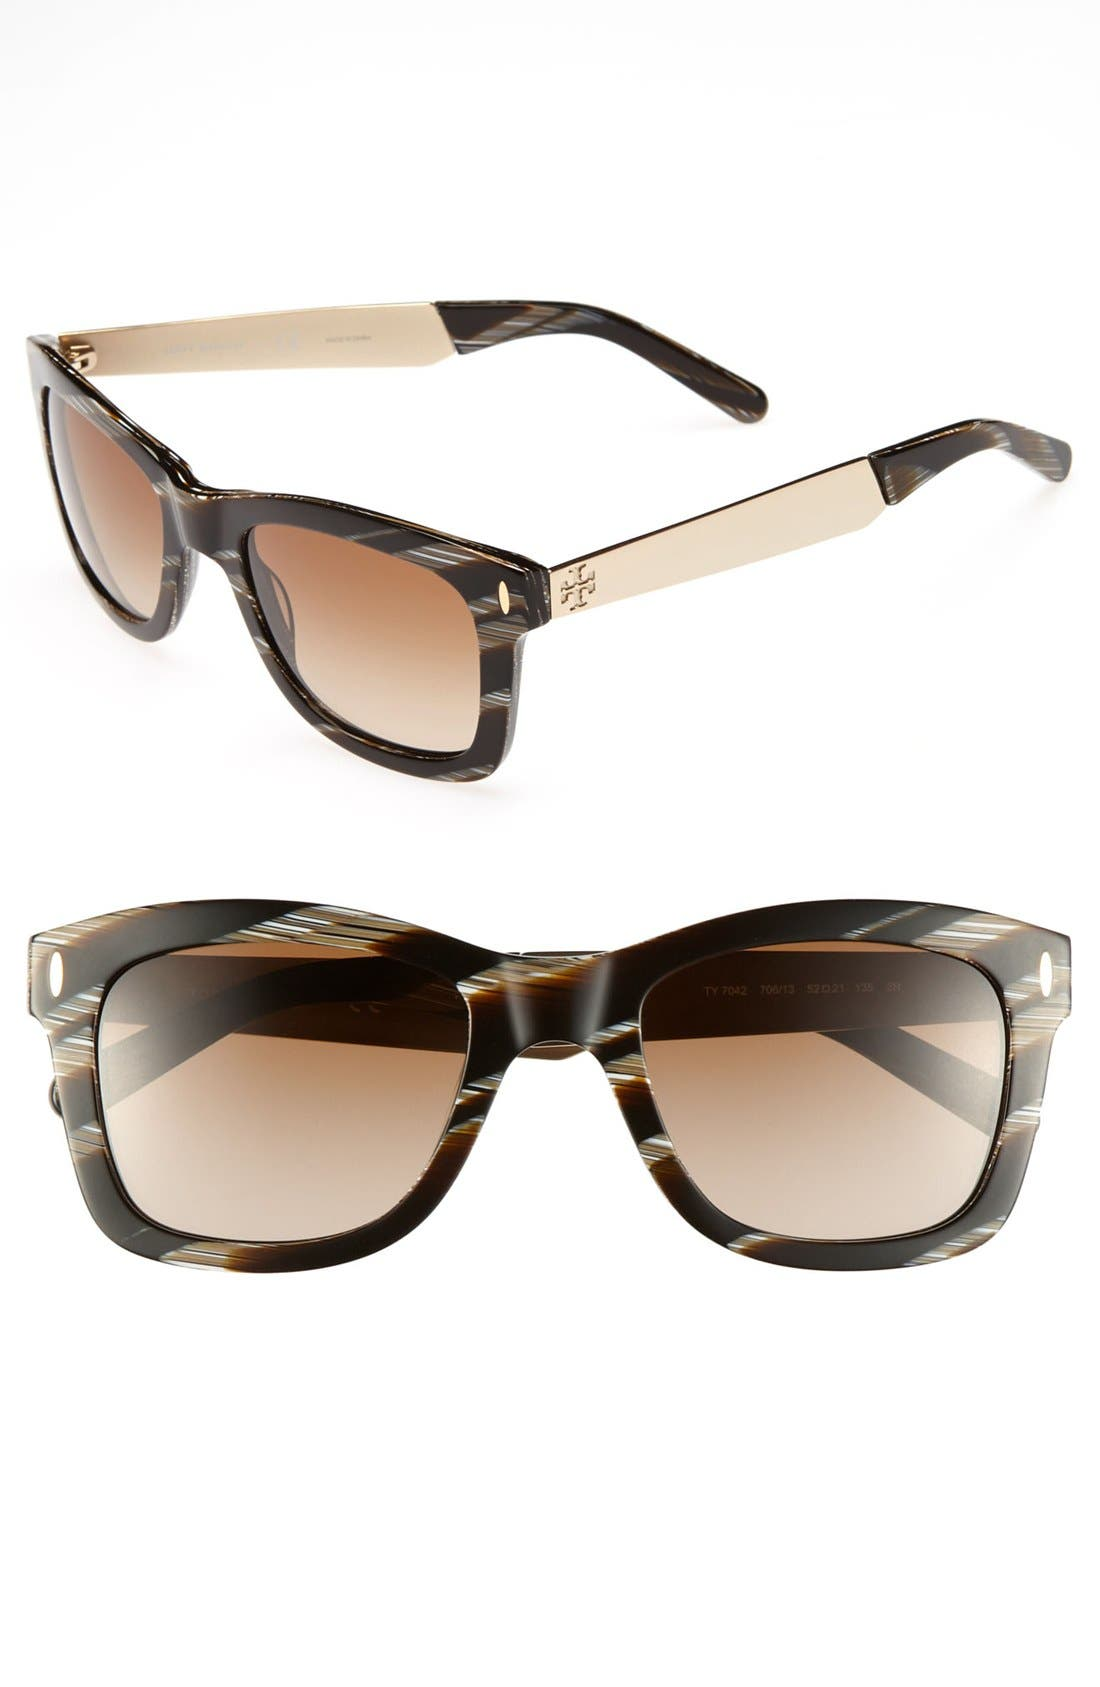 Alternate Image 1 Selected - Tory Burch 52mm Sunglasses (Online Only)